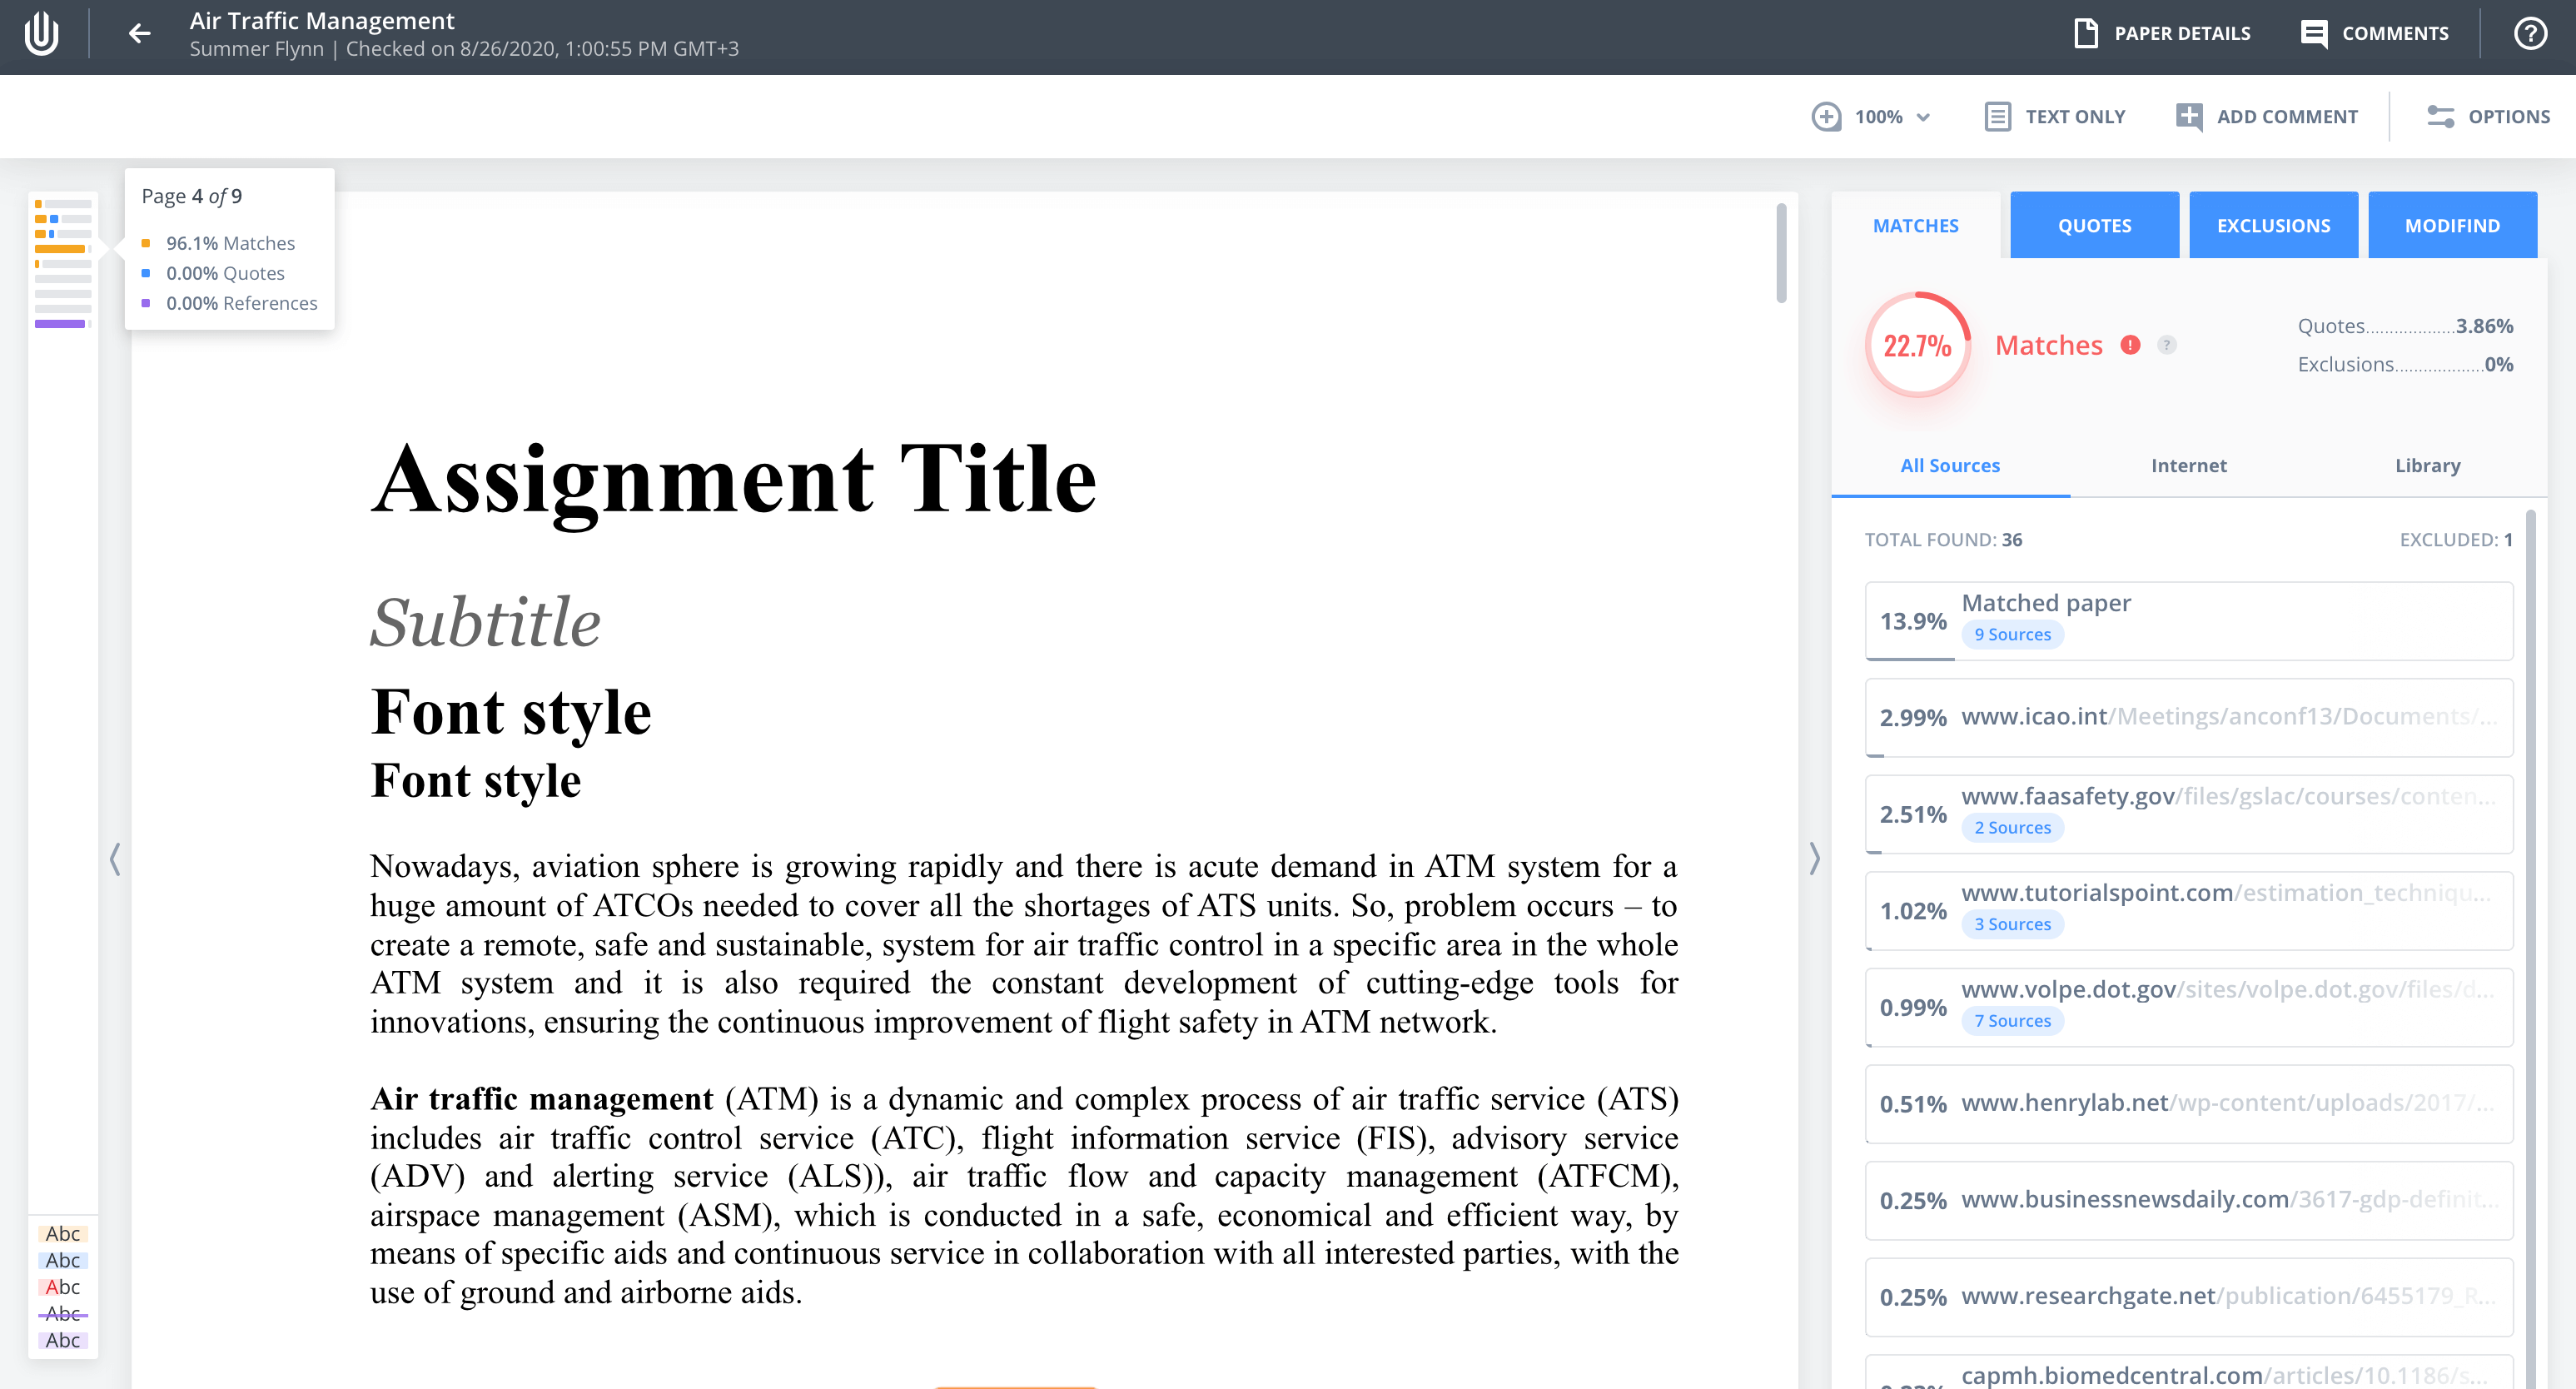 Color-coded minimap for easy navigation across the document